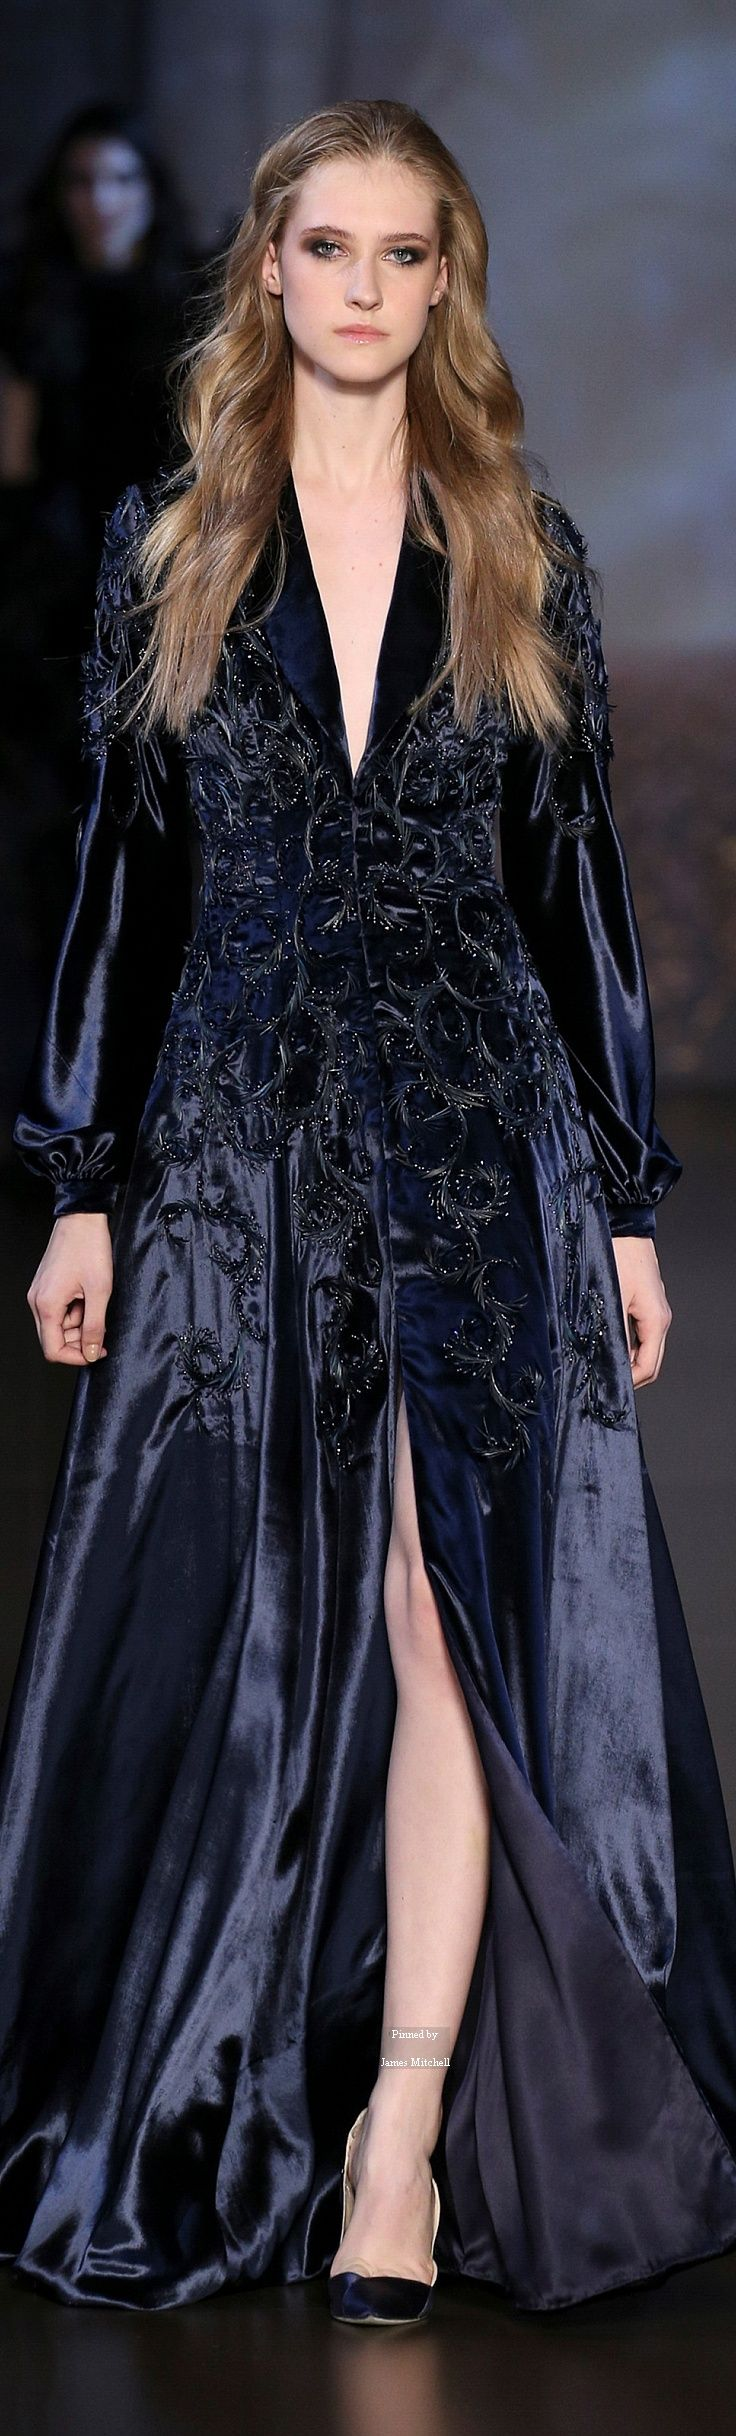 Ralph & Russo Haute Couture Fall Winter 2015-16 collection (=)